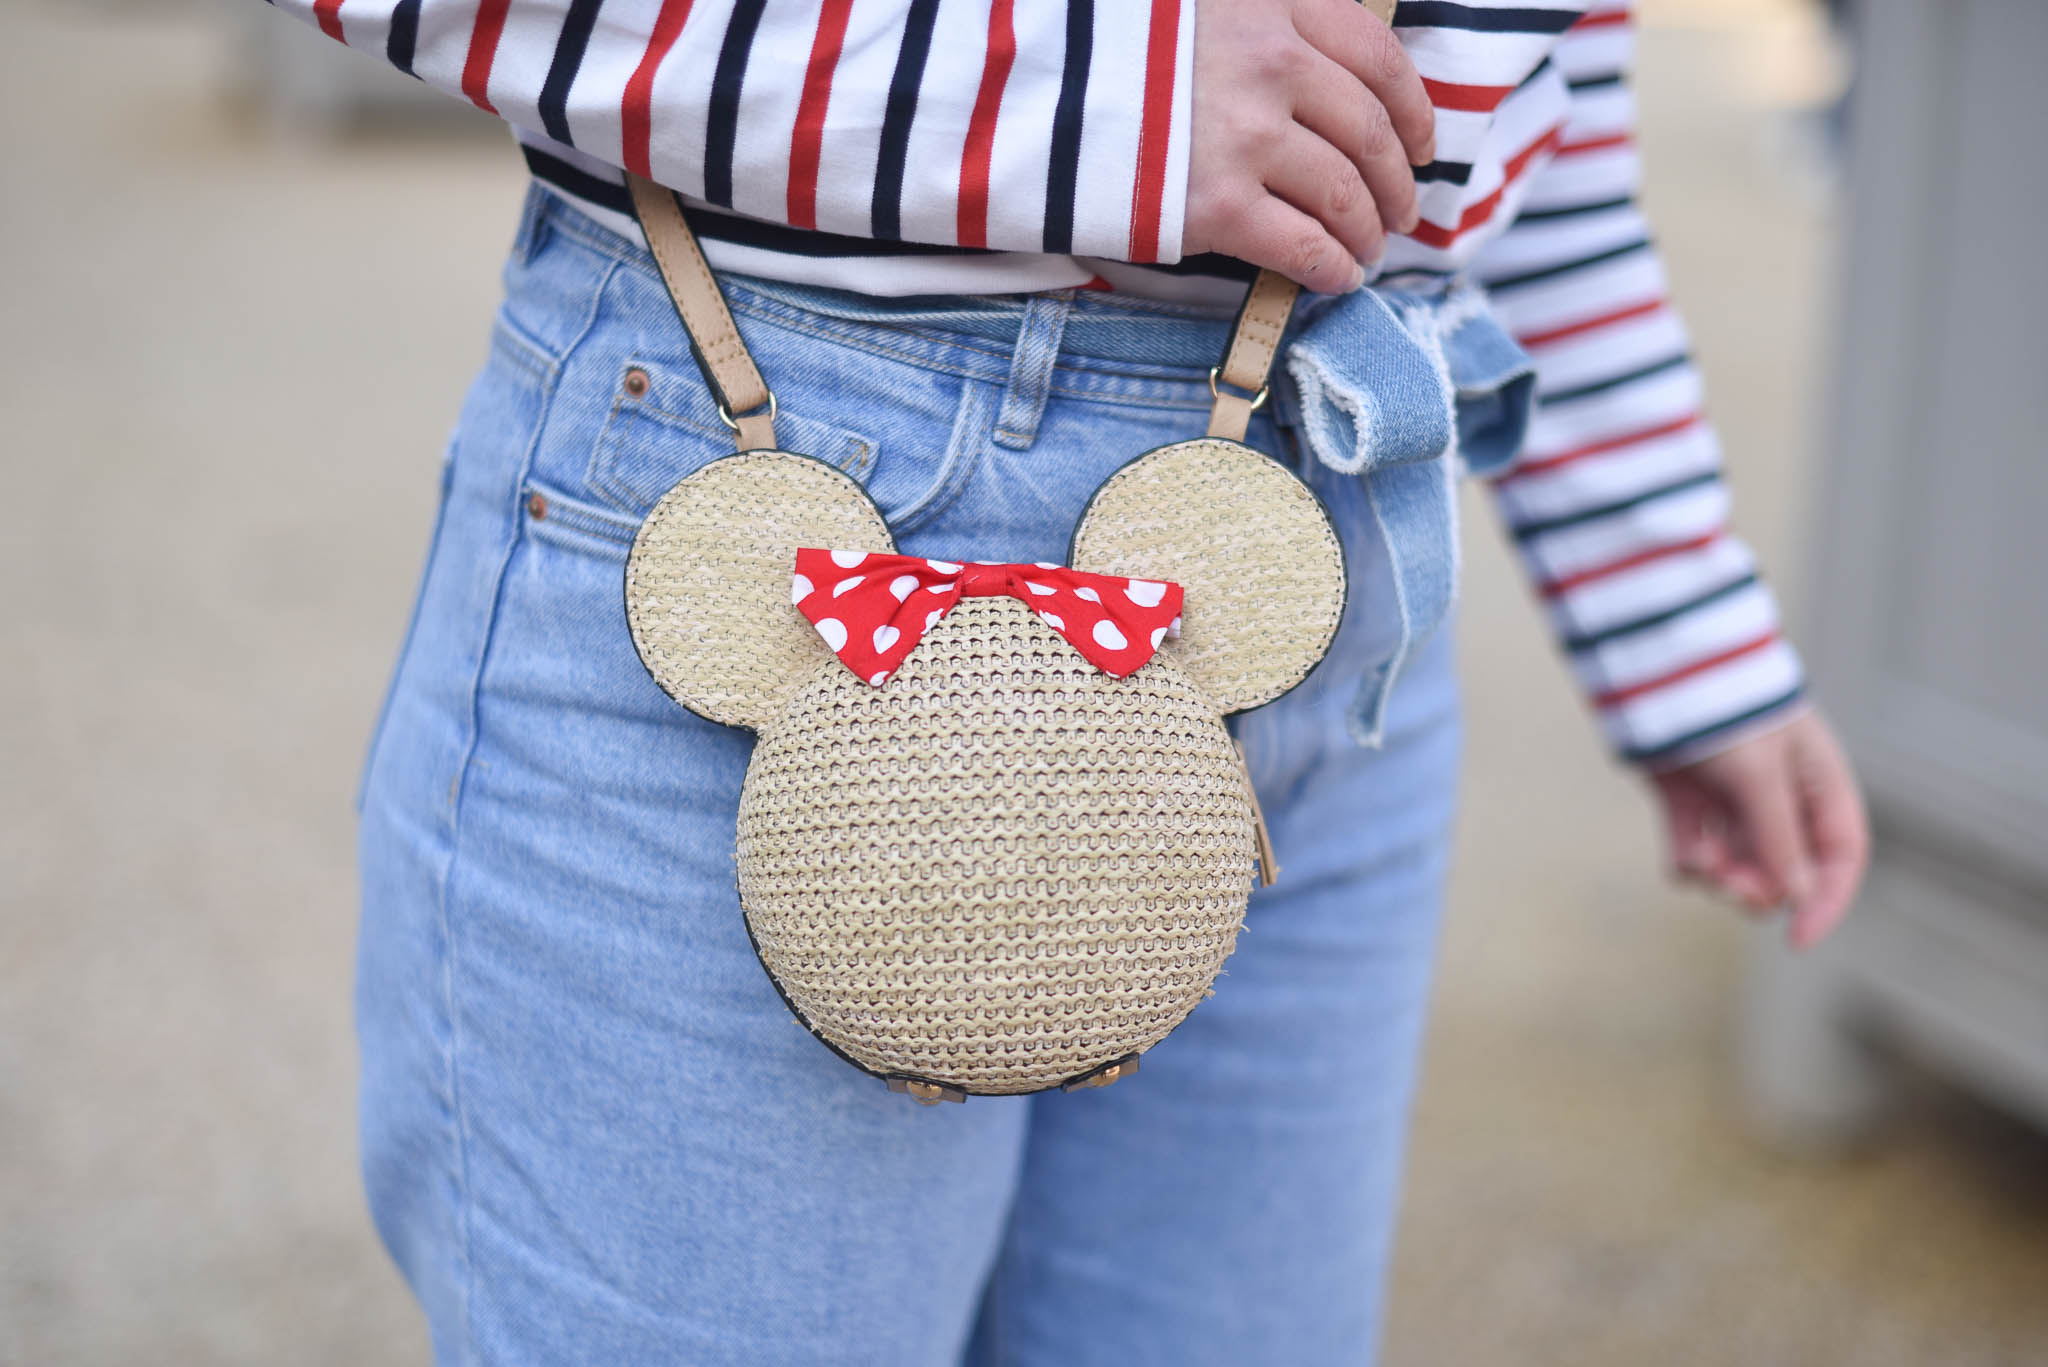 sac minnie primark